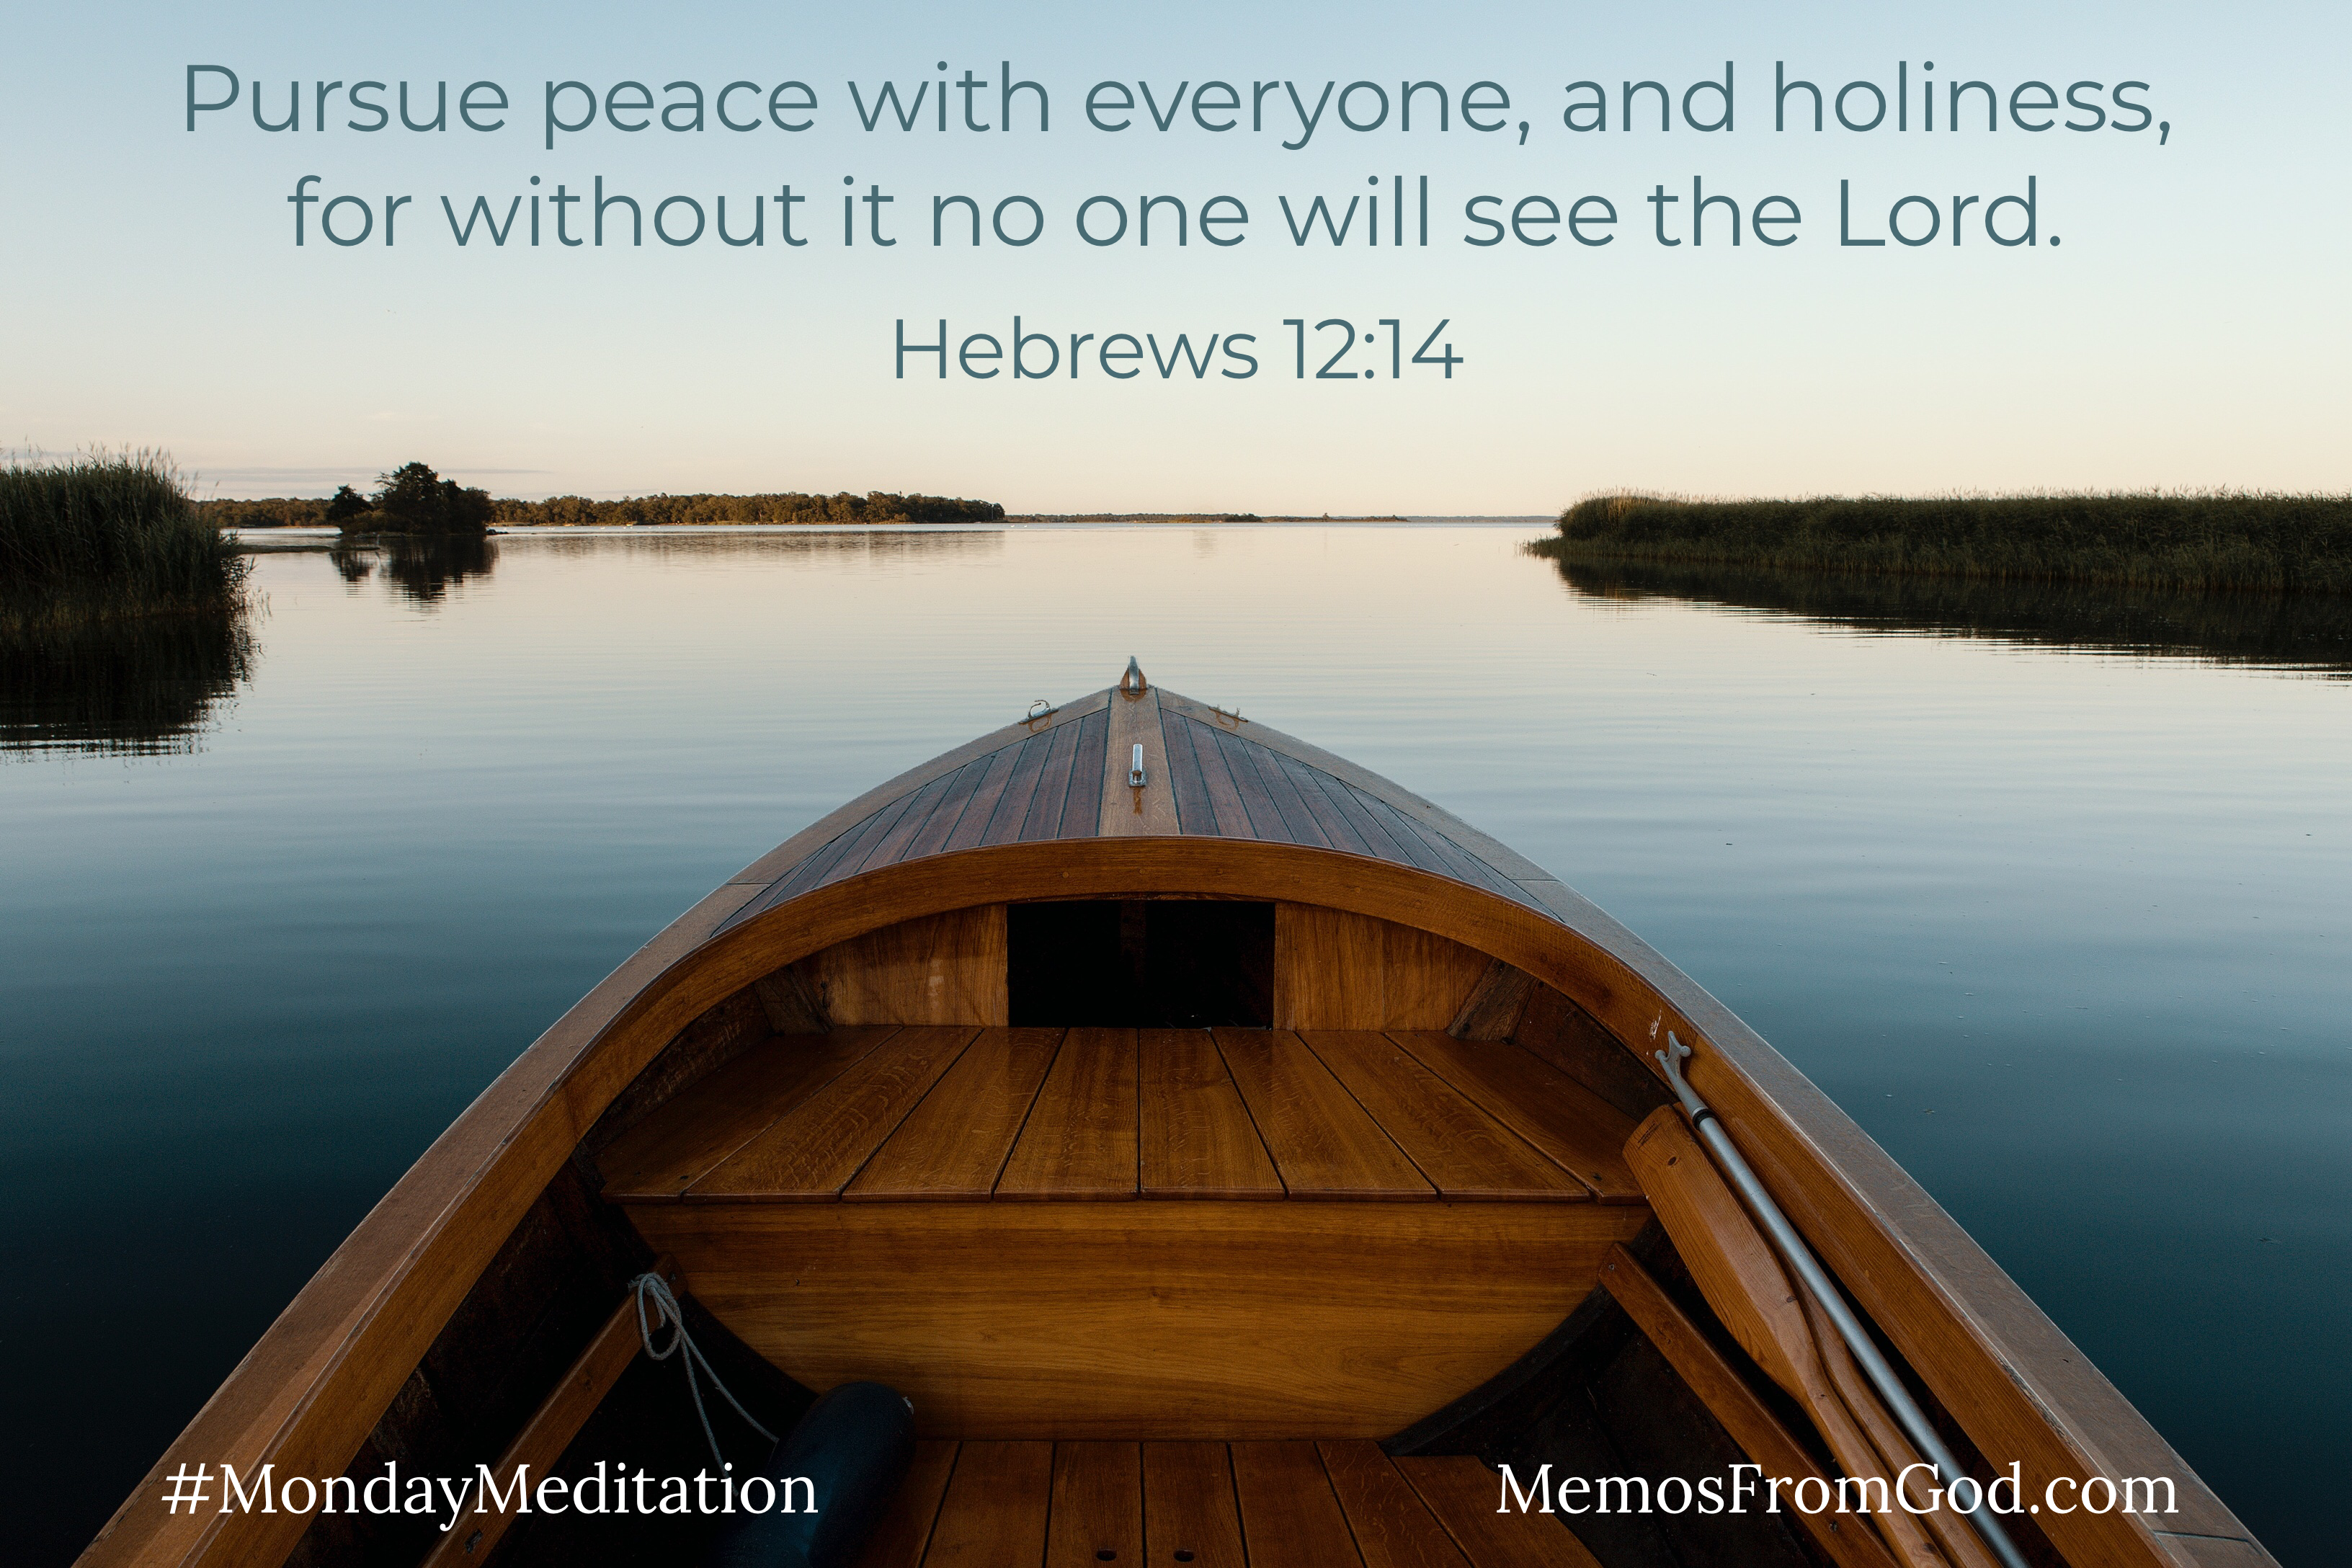 The view of a calm lake over the bow of a wooden boat. Caption: Pursue peace with everyone, and holiness, for without it no one will see the Lord. Hebrews 12:14